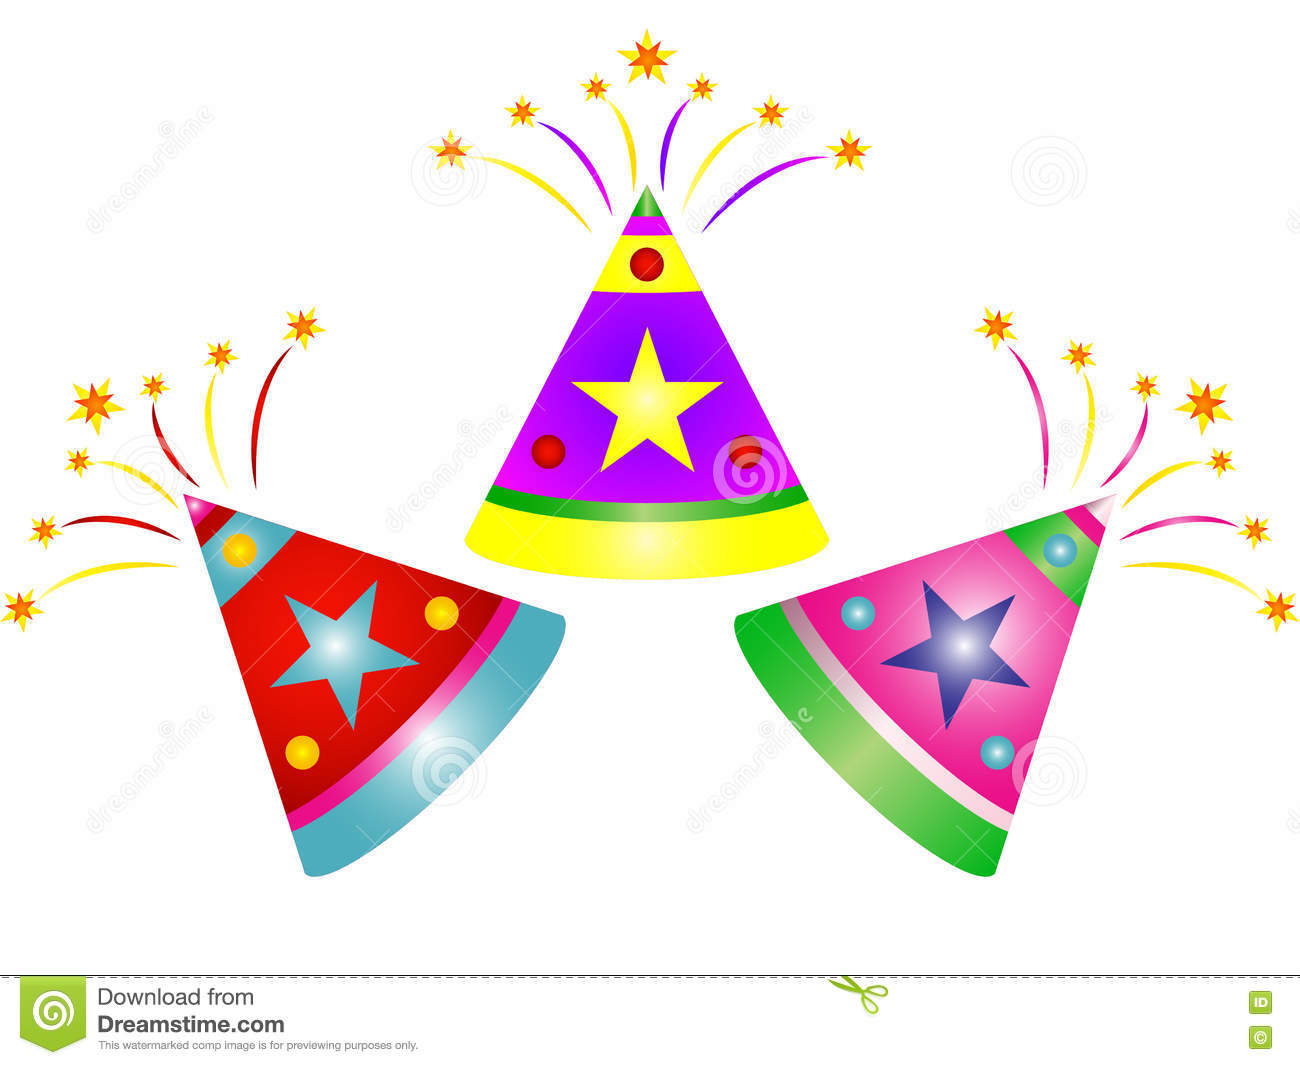 Diwali crackers clipart » Clipart Station.